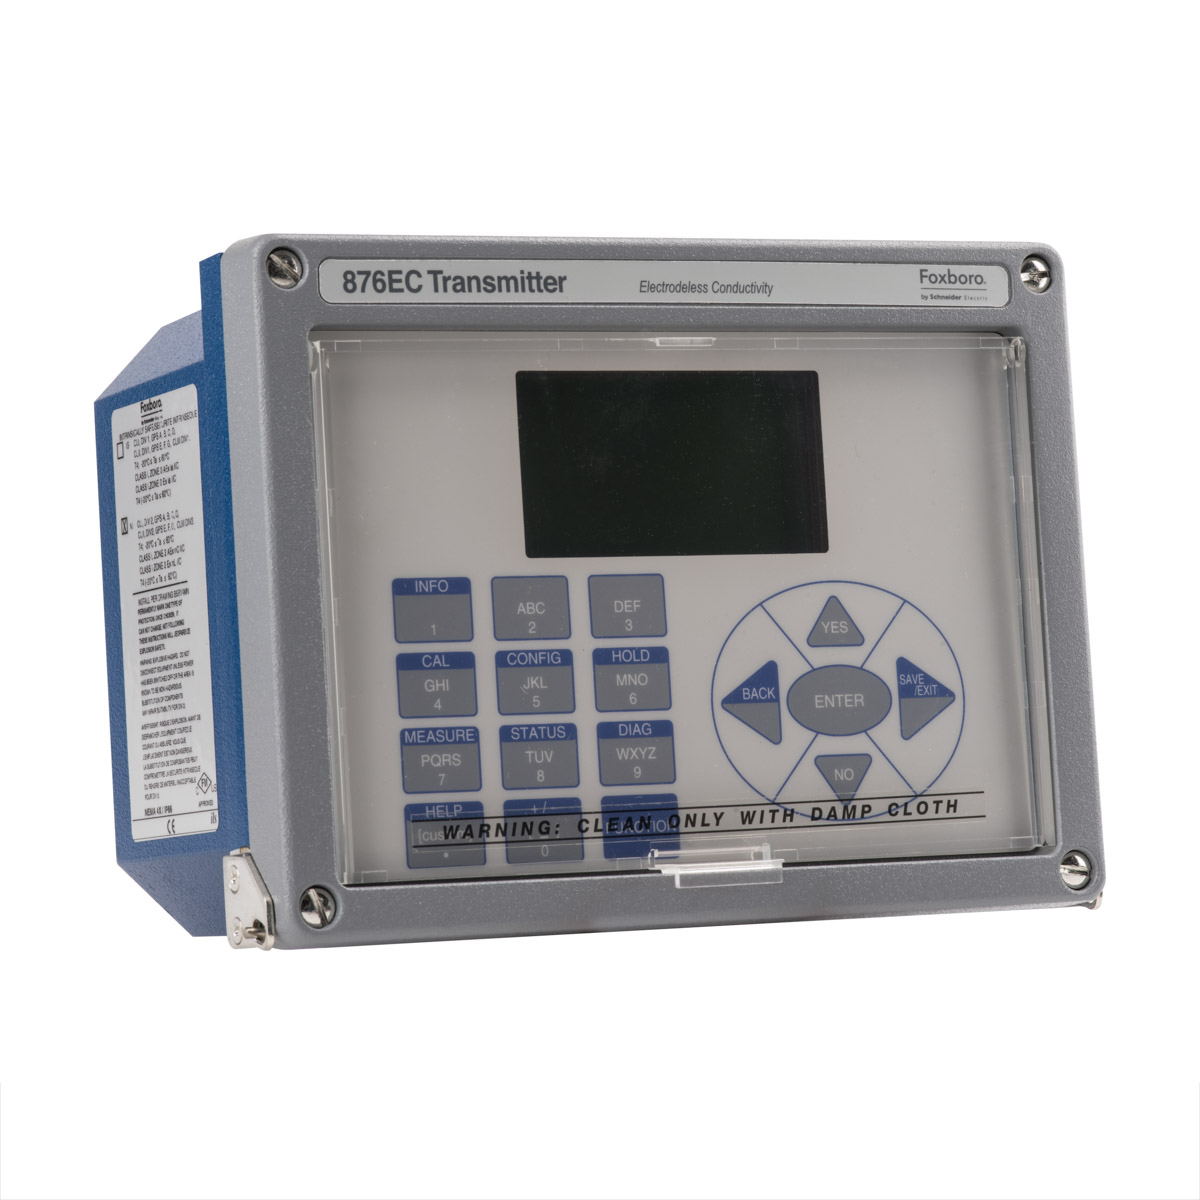 Foxboro 875EC‑A2F‑A Electrodeless Conductivity Analyzer